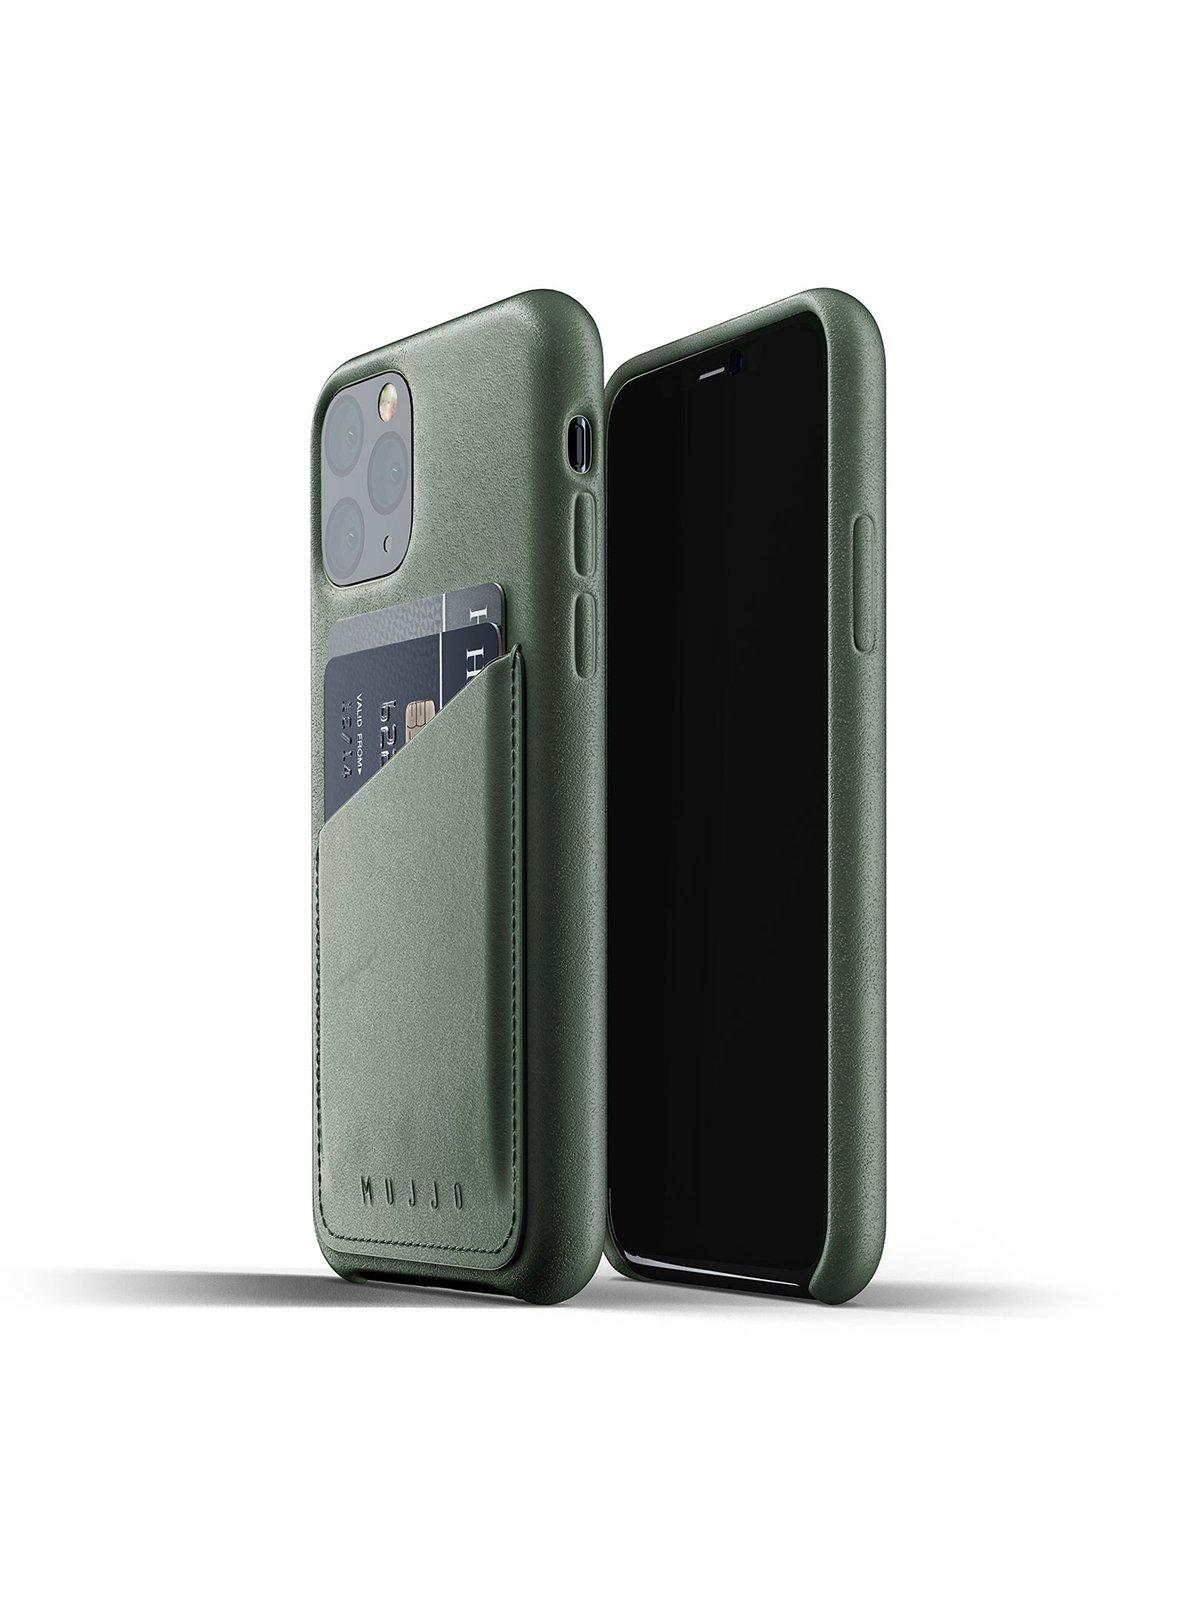 Mujjo Full Leather Wallet Case for iPhone 11 Pro Slate Green - MORE by Morello Indonesia